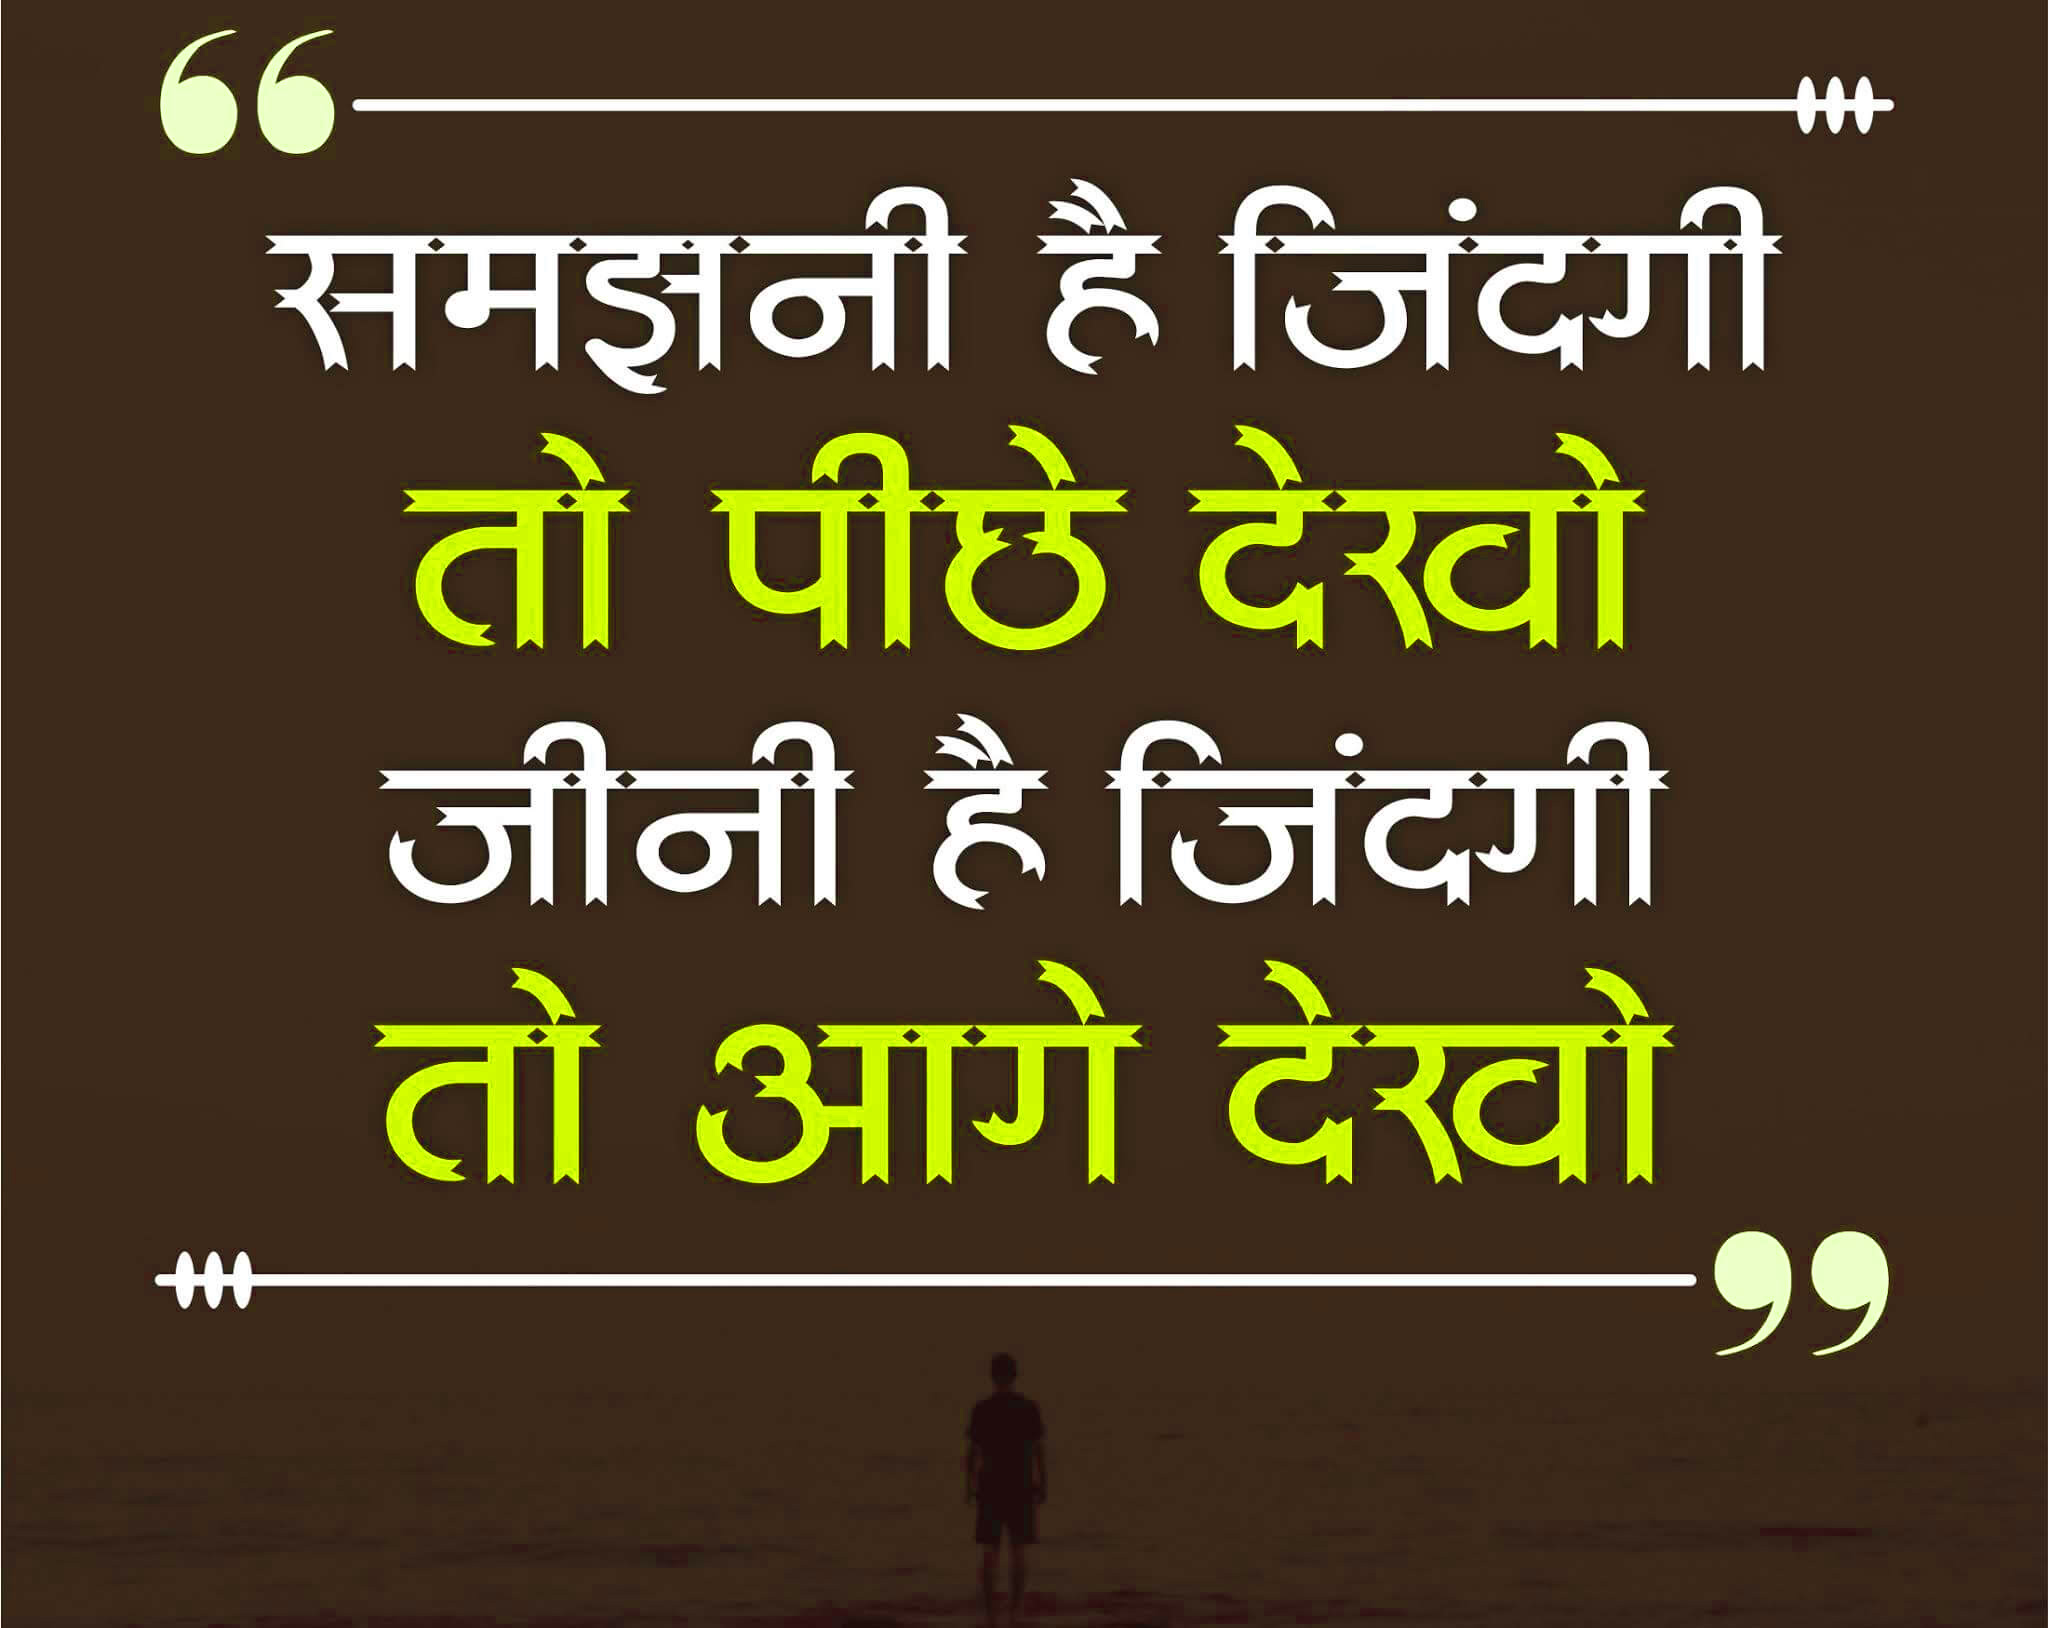 Truth of Life Quotes In Hindi Images wallpaper pics hd free download